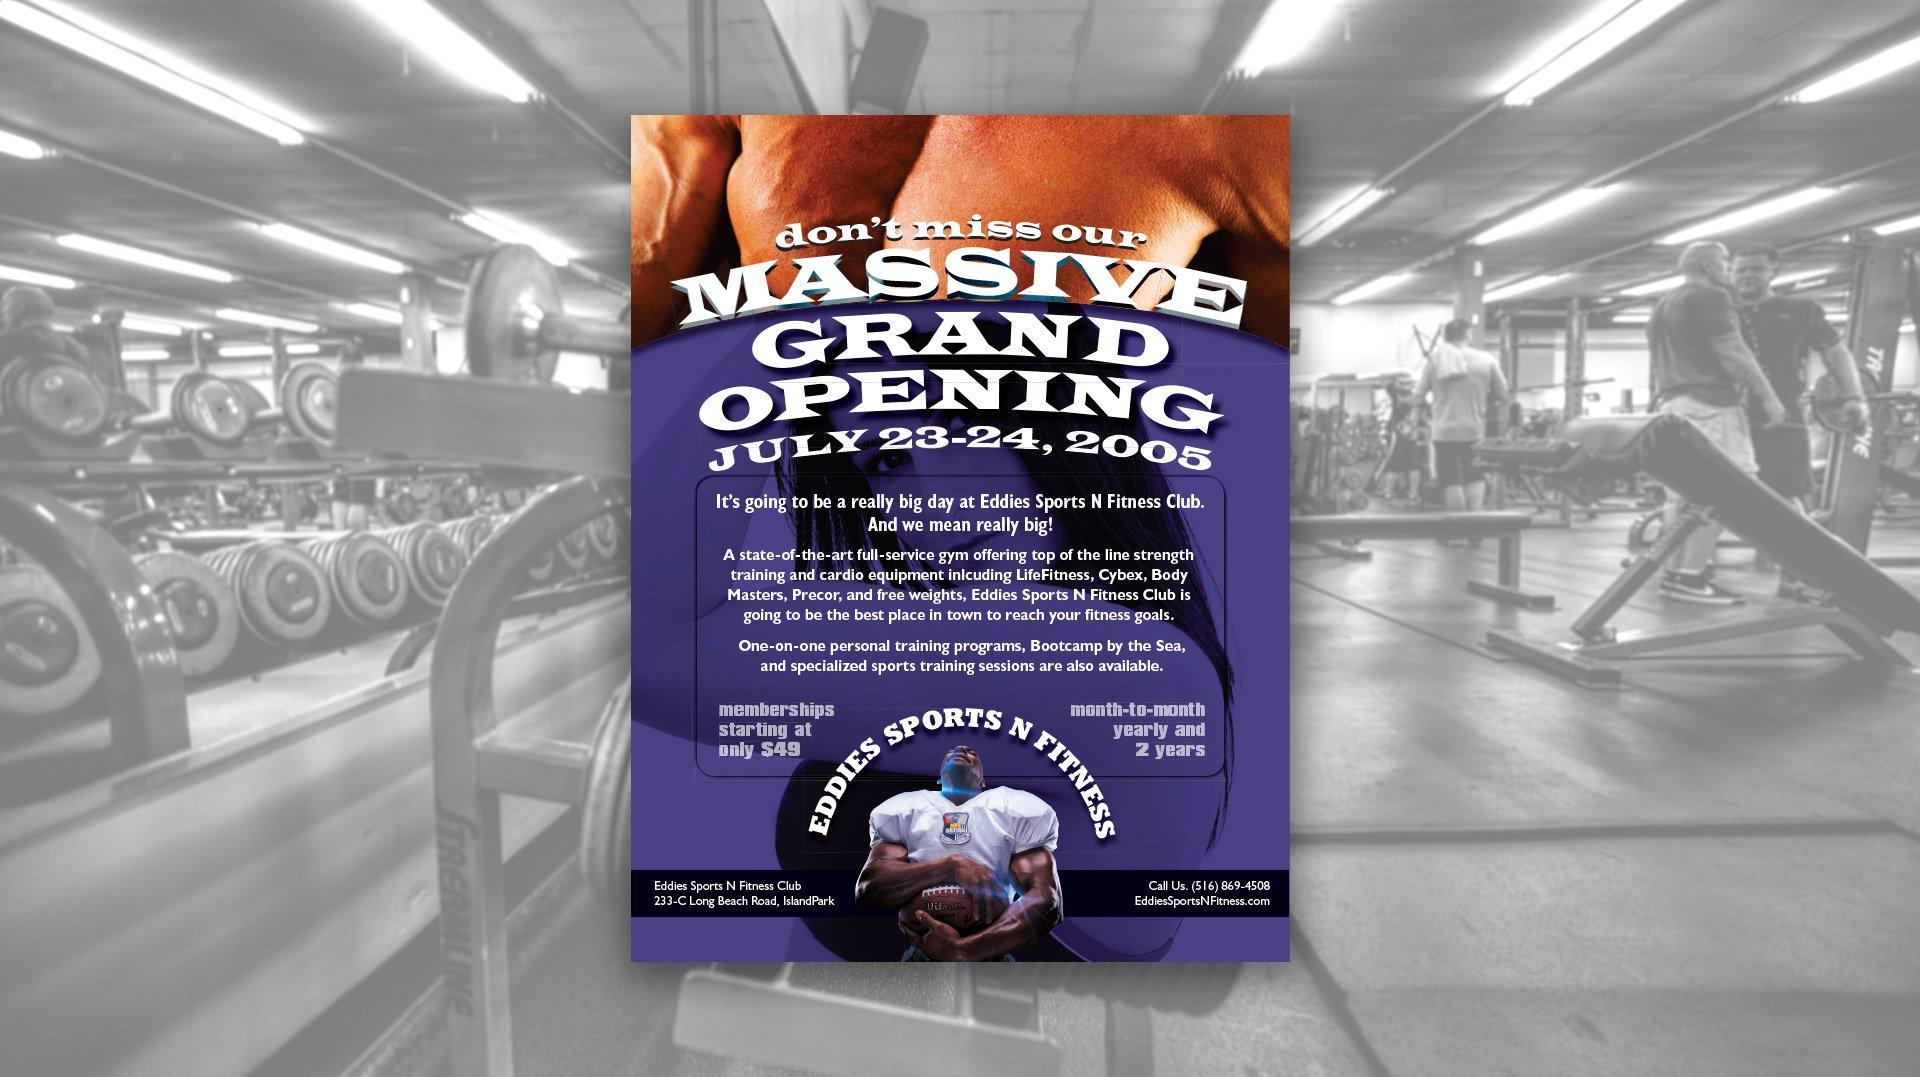 Flyer design for Eddies Sports N Fitness Club